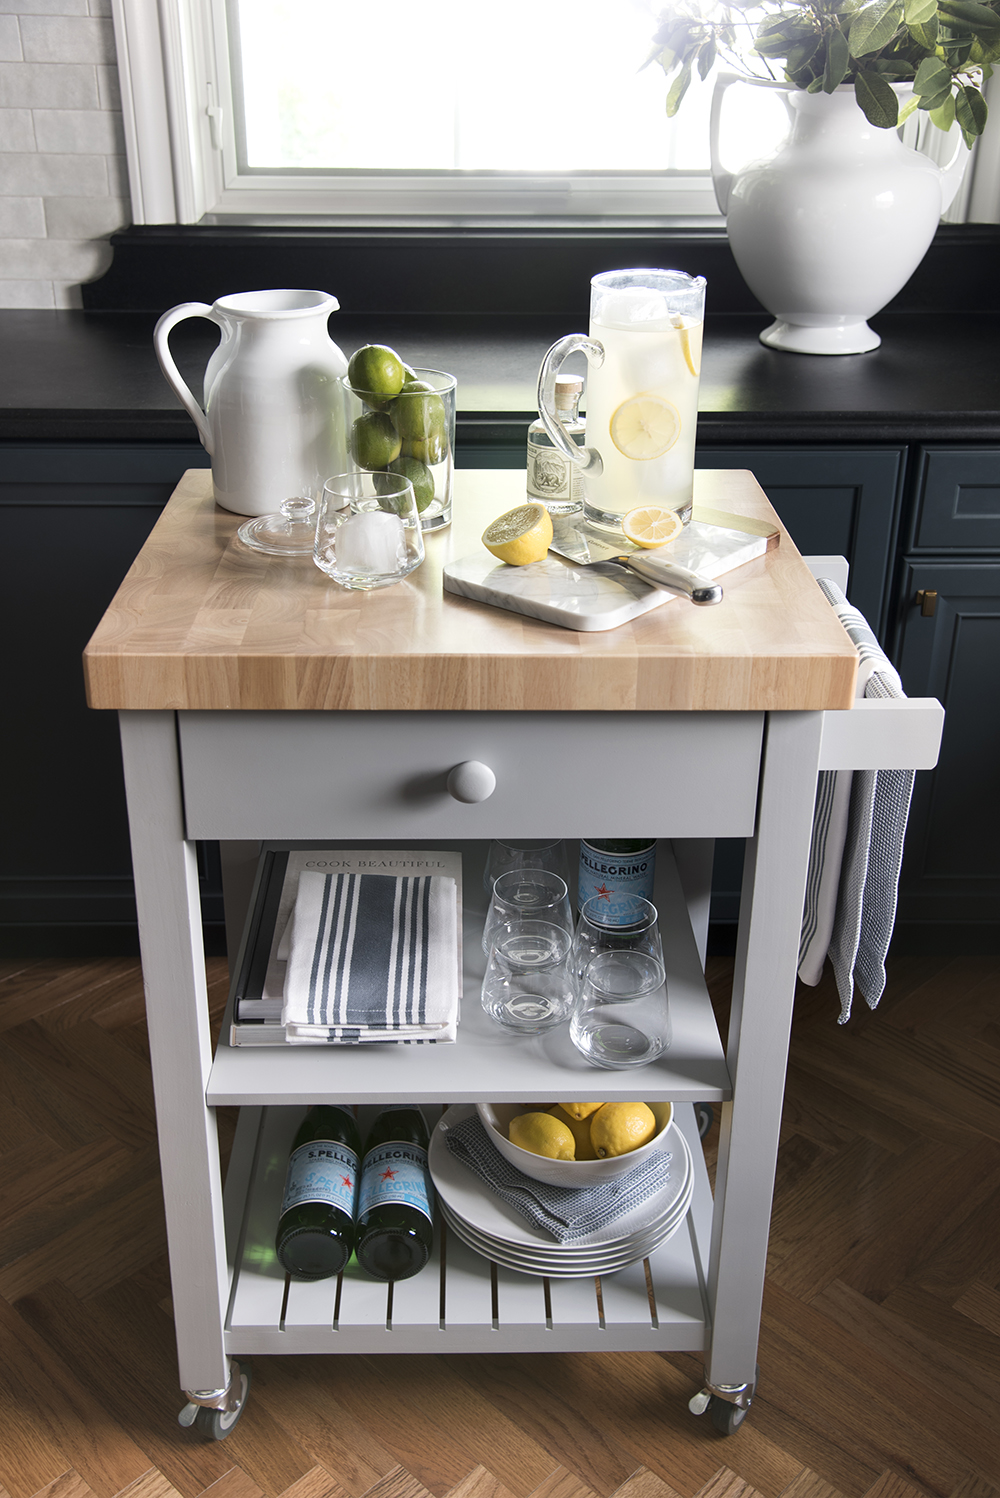 My New Kitchen Cart & Weekend Entertaining - roomfortuesday.com